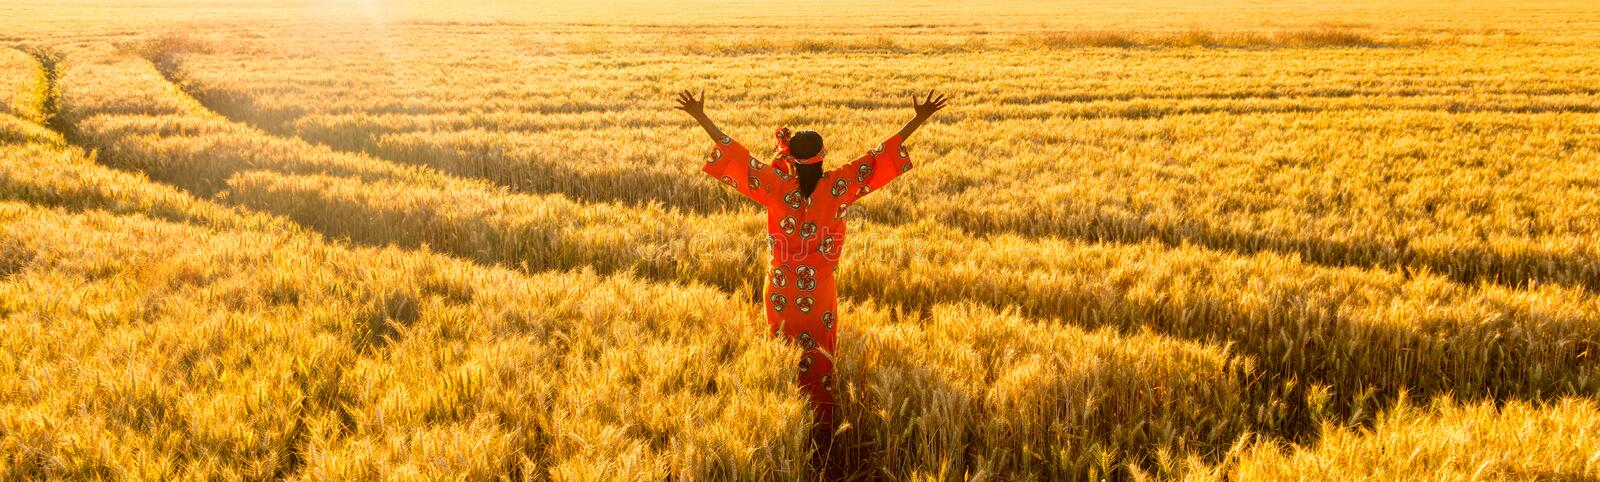 African woman arms raised in a field of crops at sunset or sunrise panorama. African woman in traditional clothes standing, arms raised, in field of barley or stock image